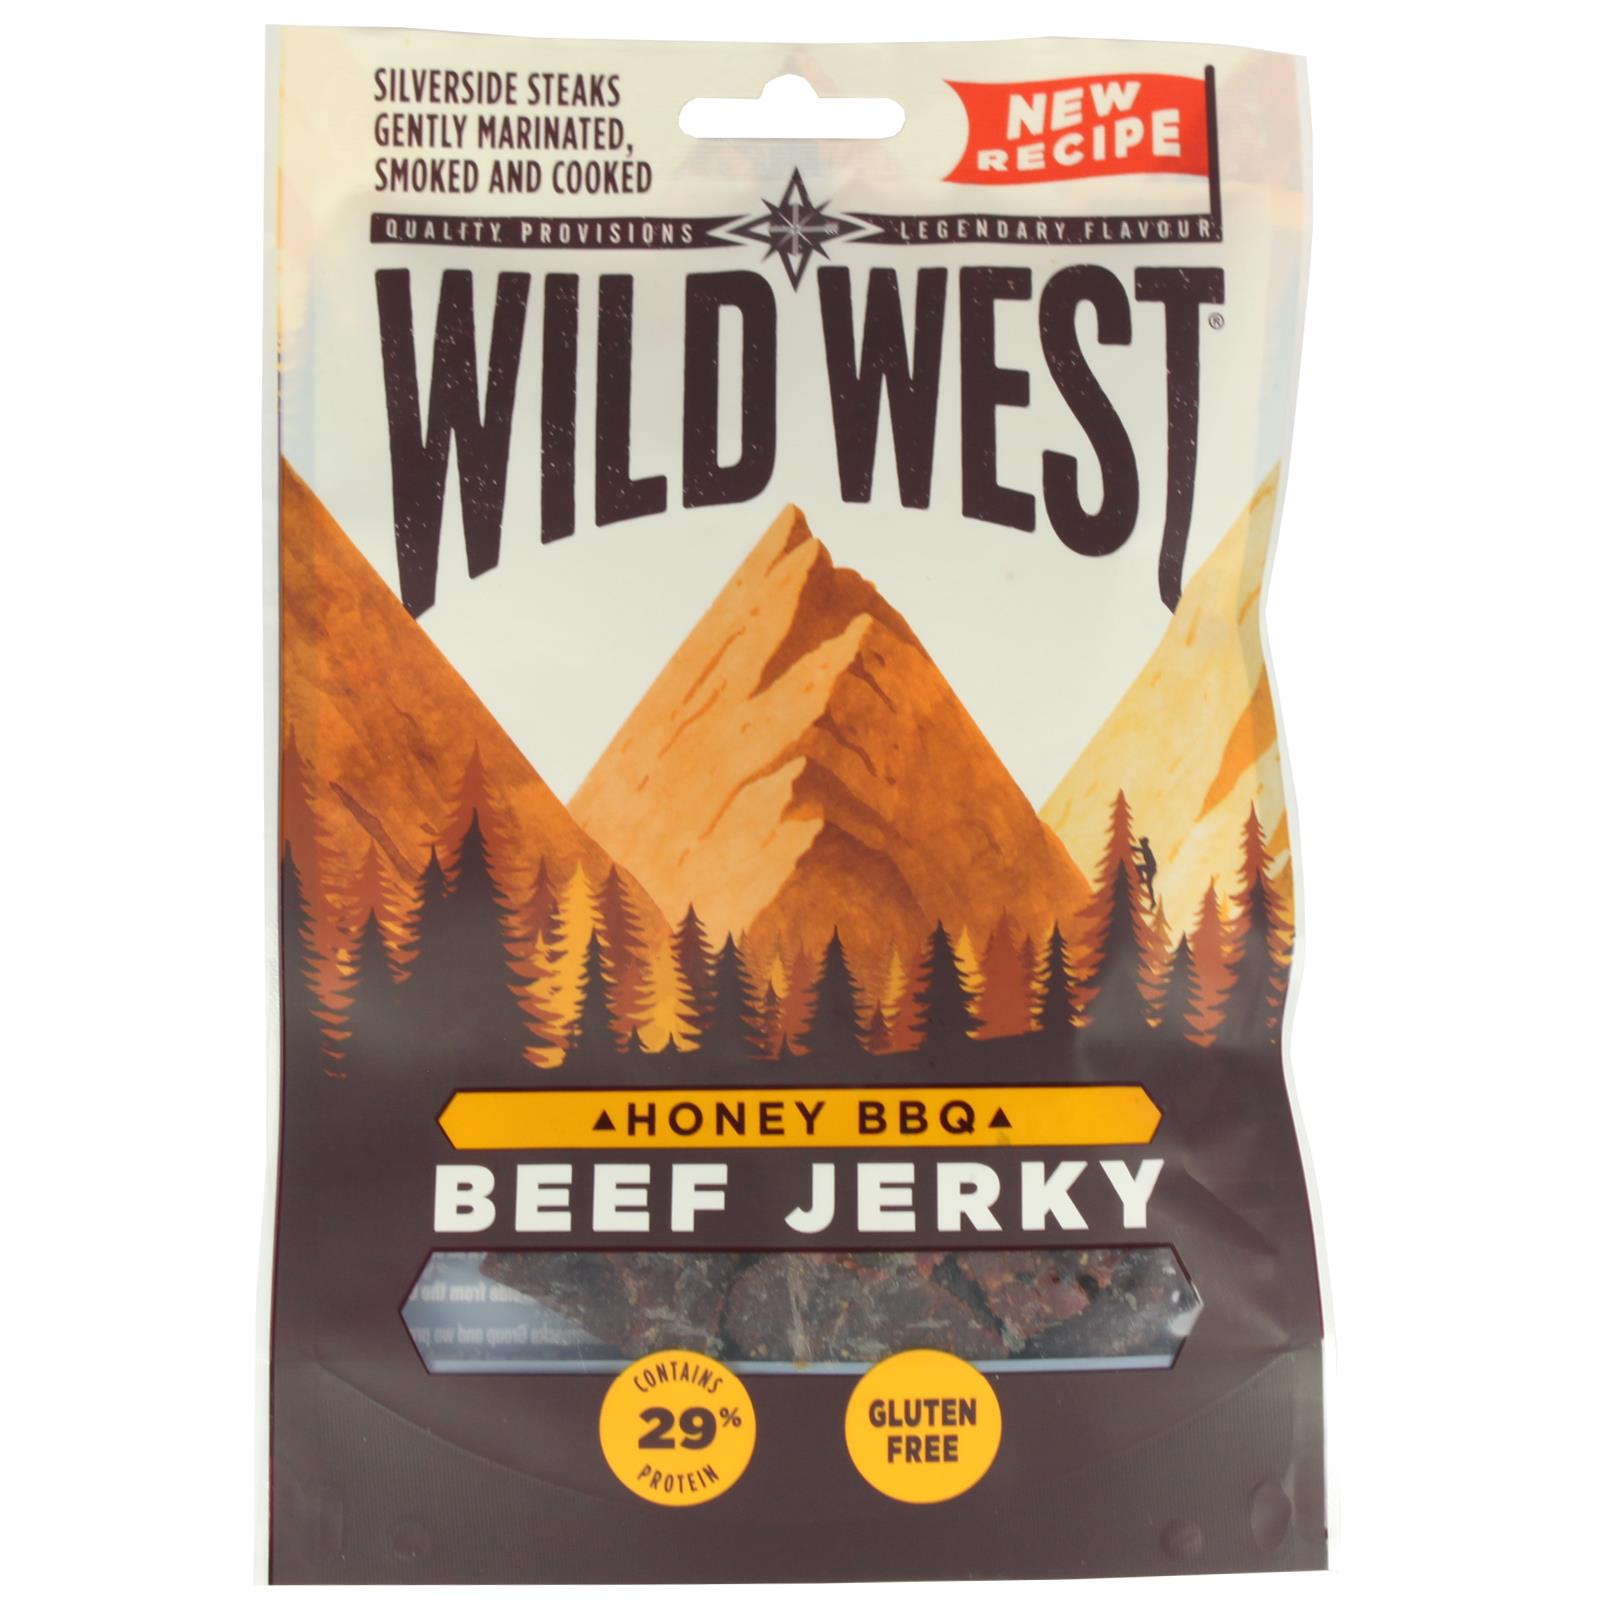 Wild-West-Beef-Jerky-All-Flavours-Mixed-Packs-Gluten-Free-High-Protein-Snack miniatura 3